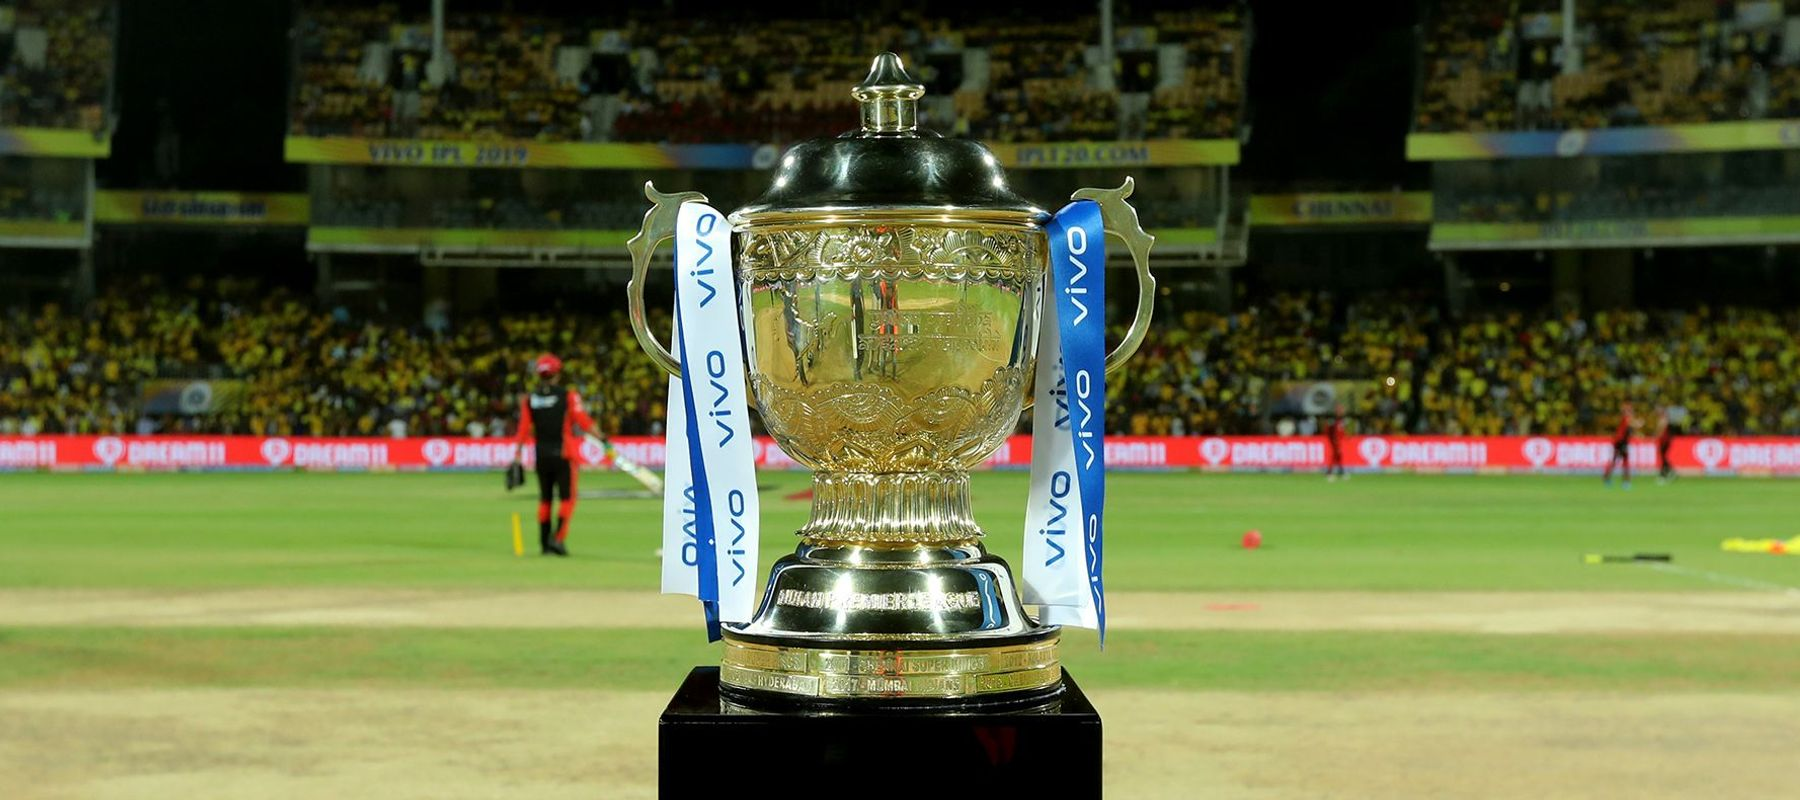 Vivo pulls back from sponsoring IPL amid backlash against Chinese companies